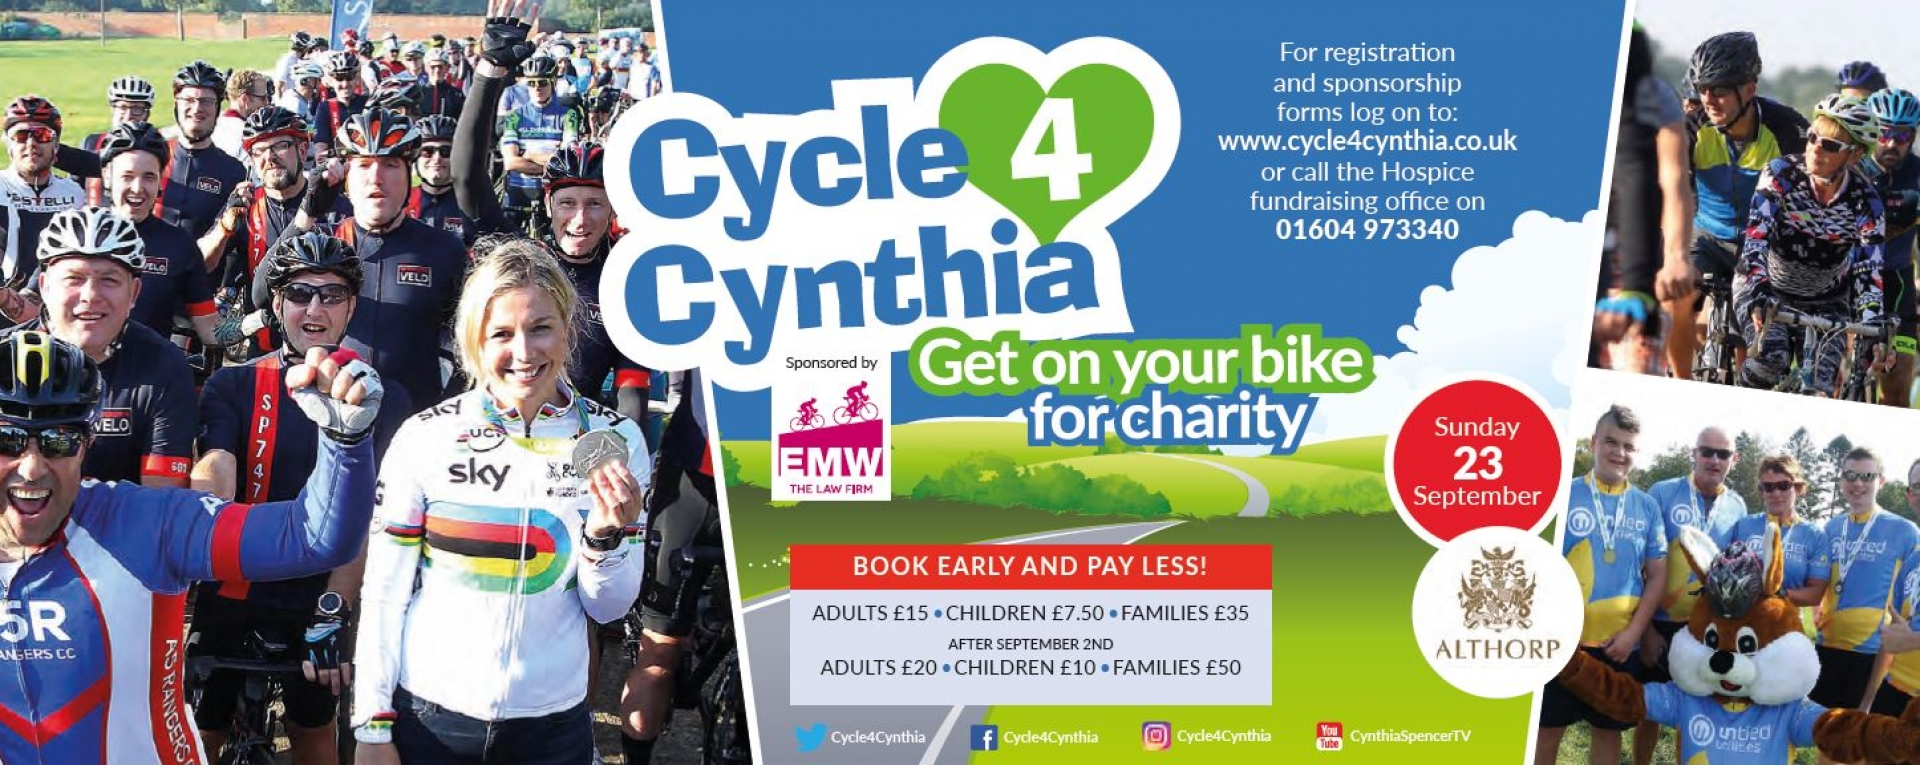 Cycle4Cynthia - 23 Sept